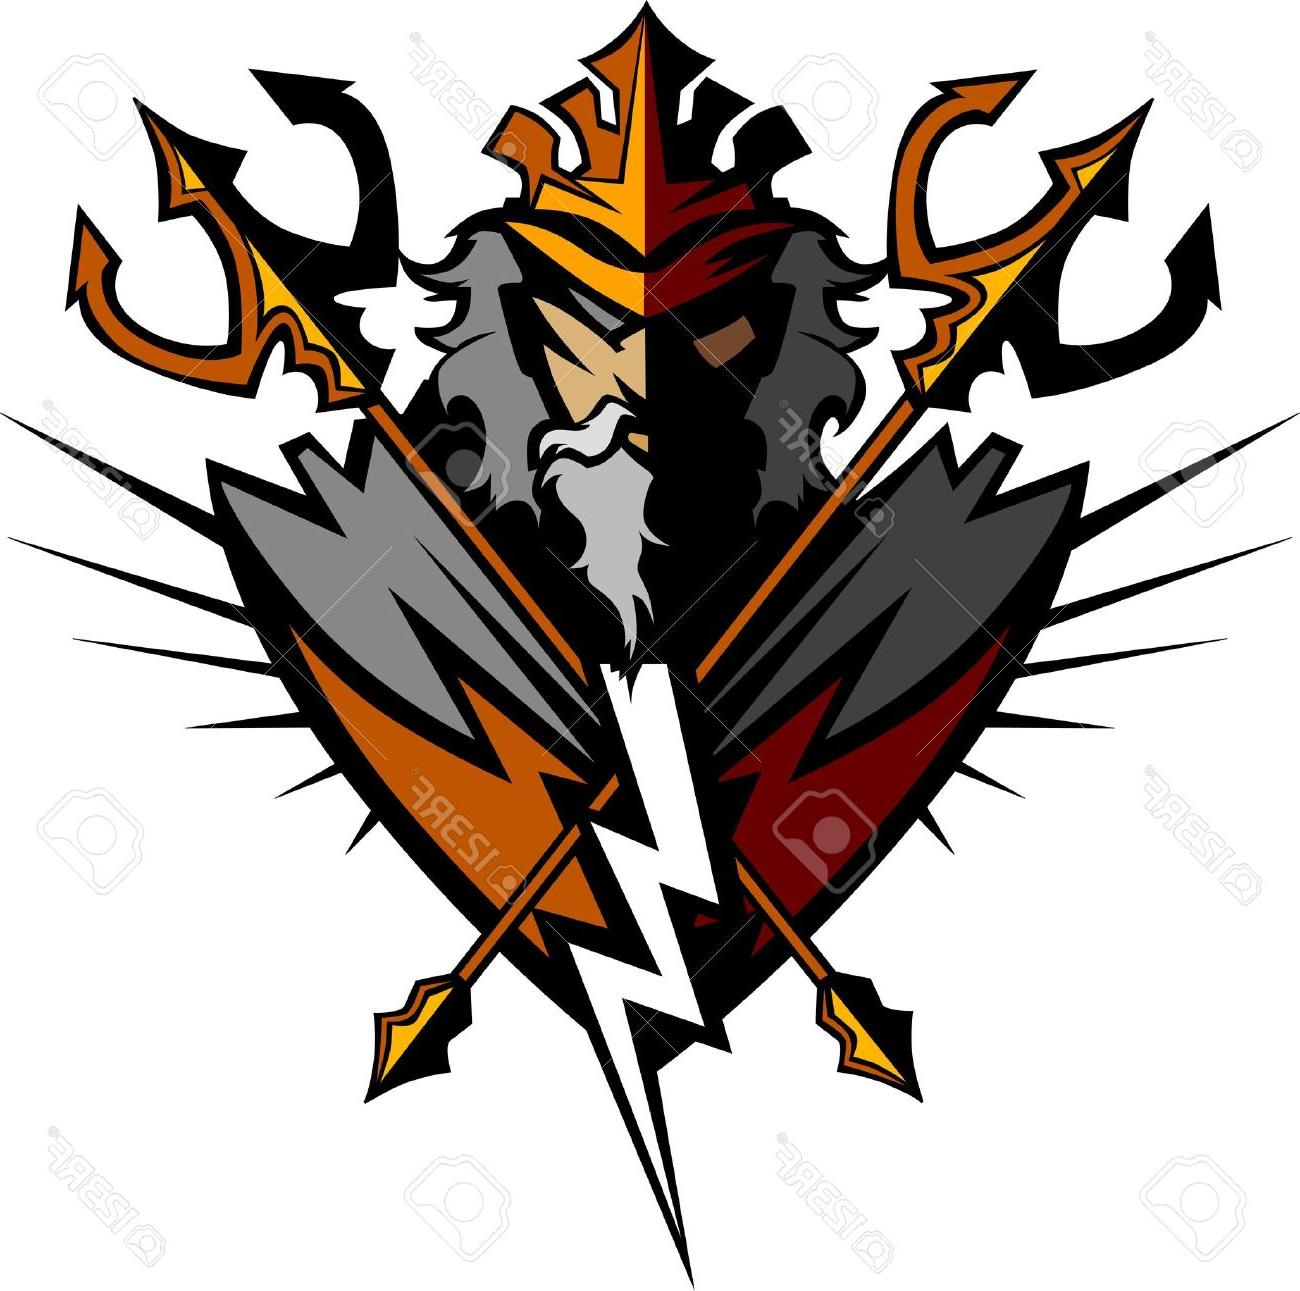 1300x1291 Best Greek God Tridents And Lightning Bolt Graphic Vector Image